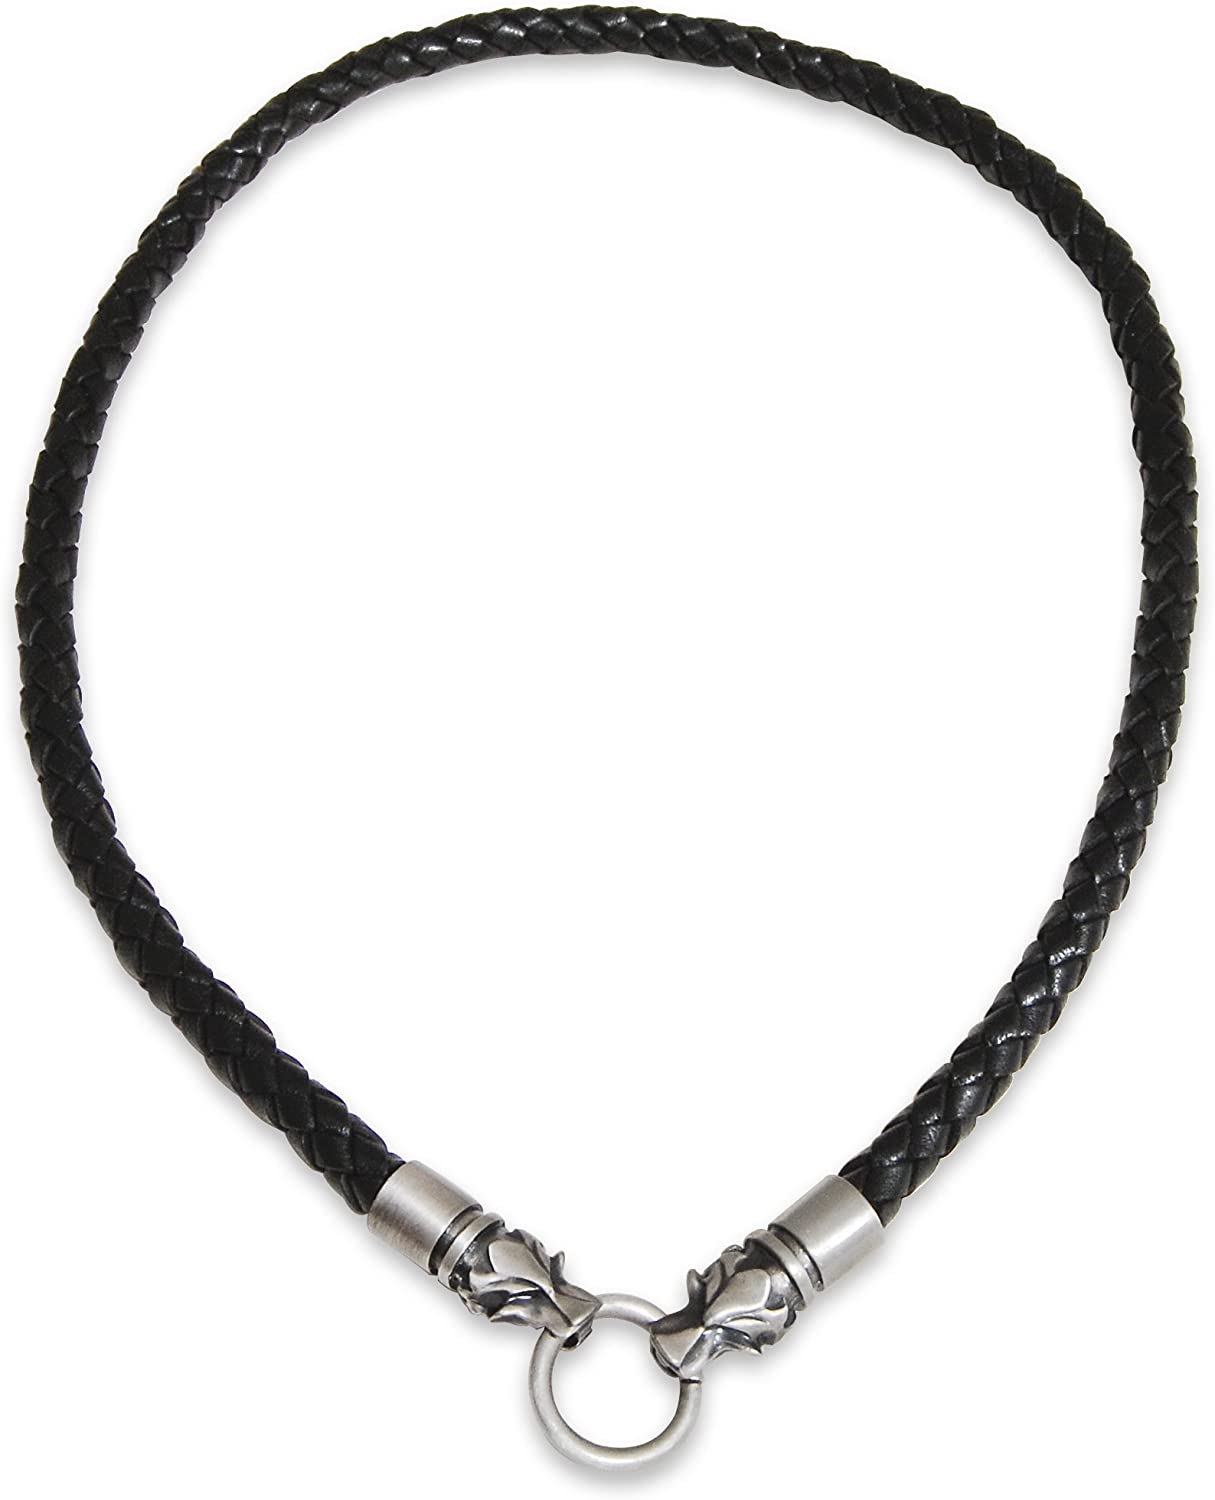 ~Custom Made~ ZODIAC Sign Charm 4mm Braided Synthetic LEATHER CHOKER NECKLACE